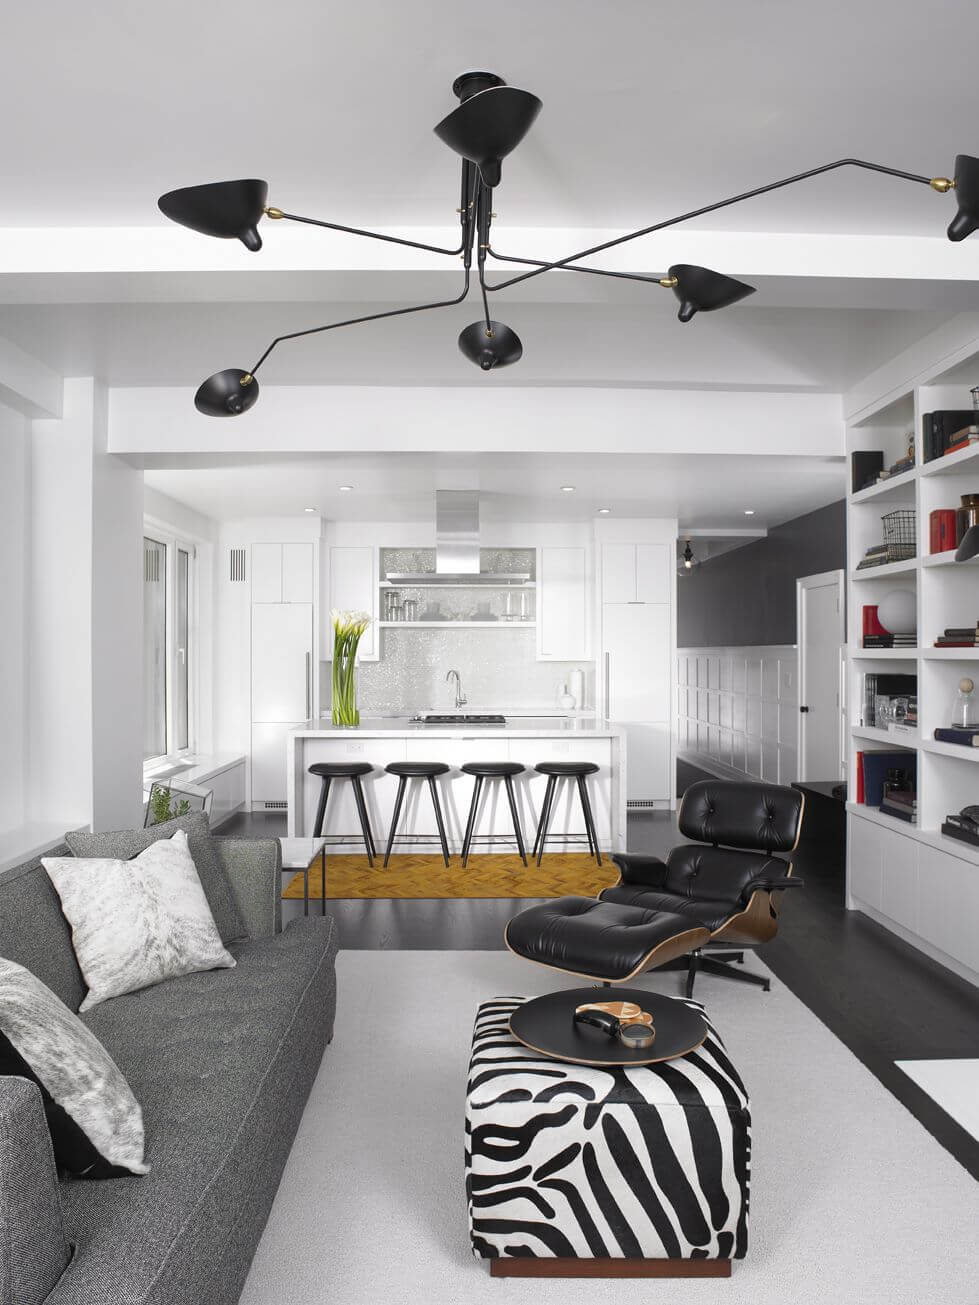 This Small Apartment Living Room In An Open Concept Living Space Features A  Small Zebra Print Part 79